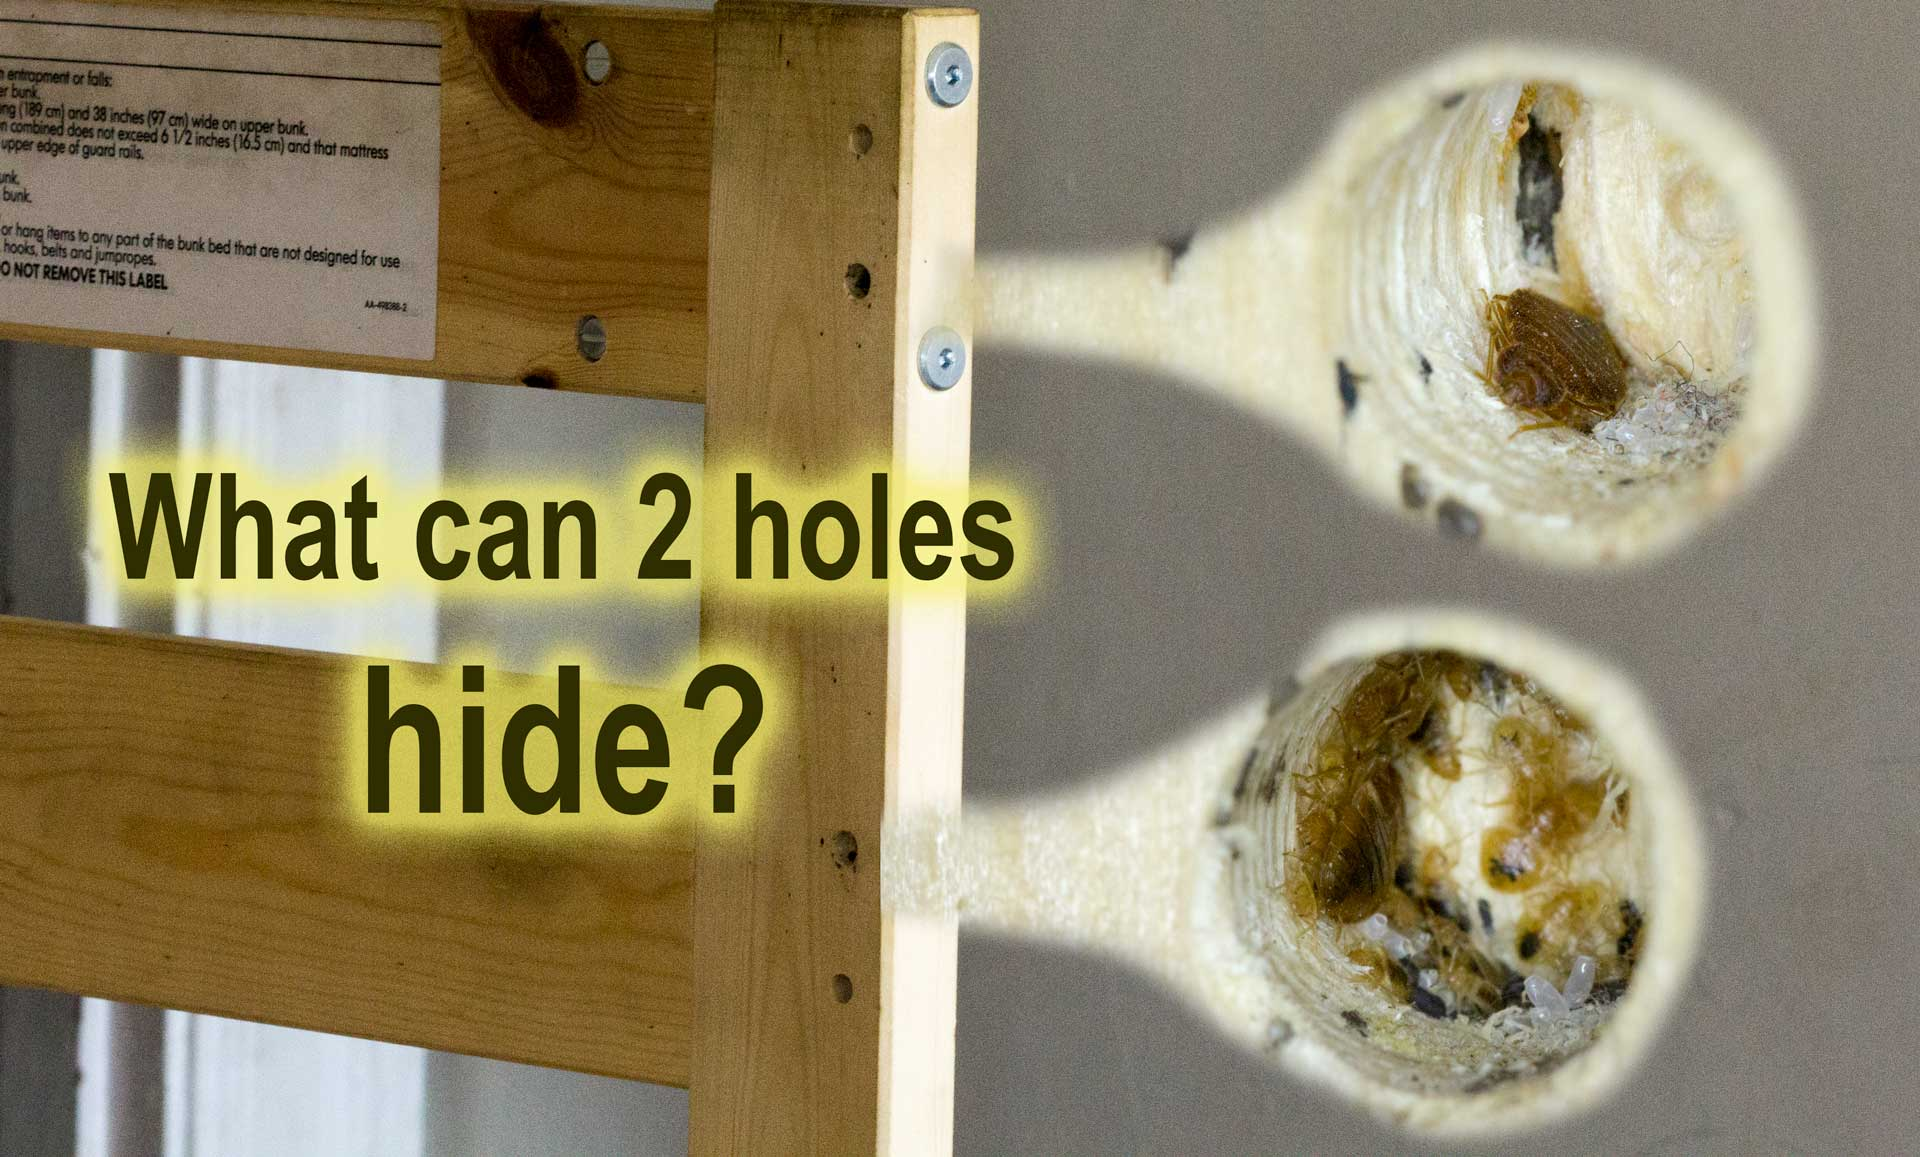 What 2 holes may hide from plain view - Bed Bug Nests!